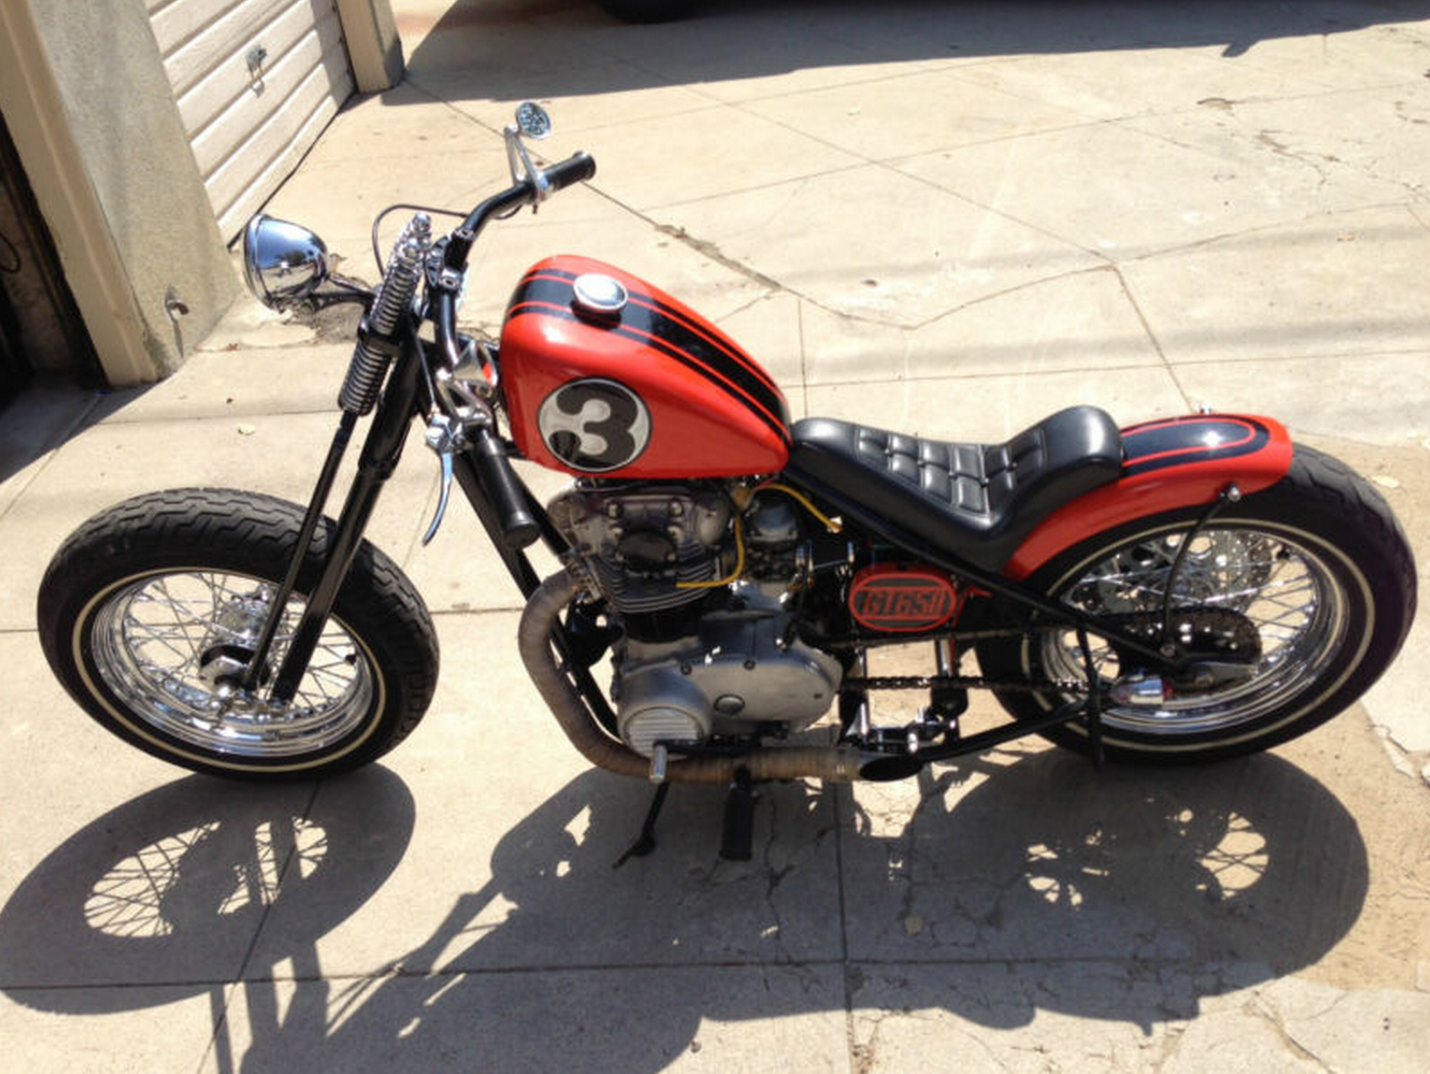 1977 Yamaha XS650 Motorcycle Hardtail Bobber | USA Bobbers on